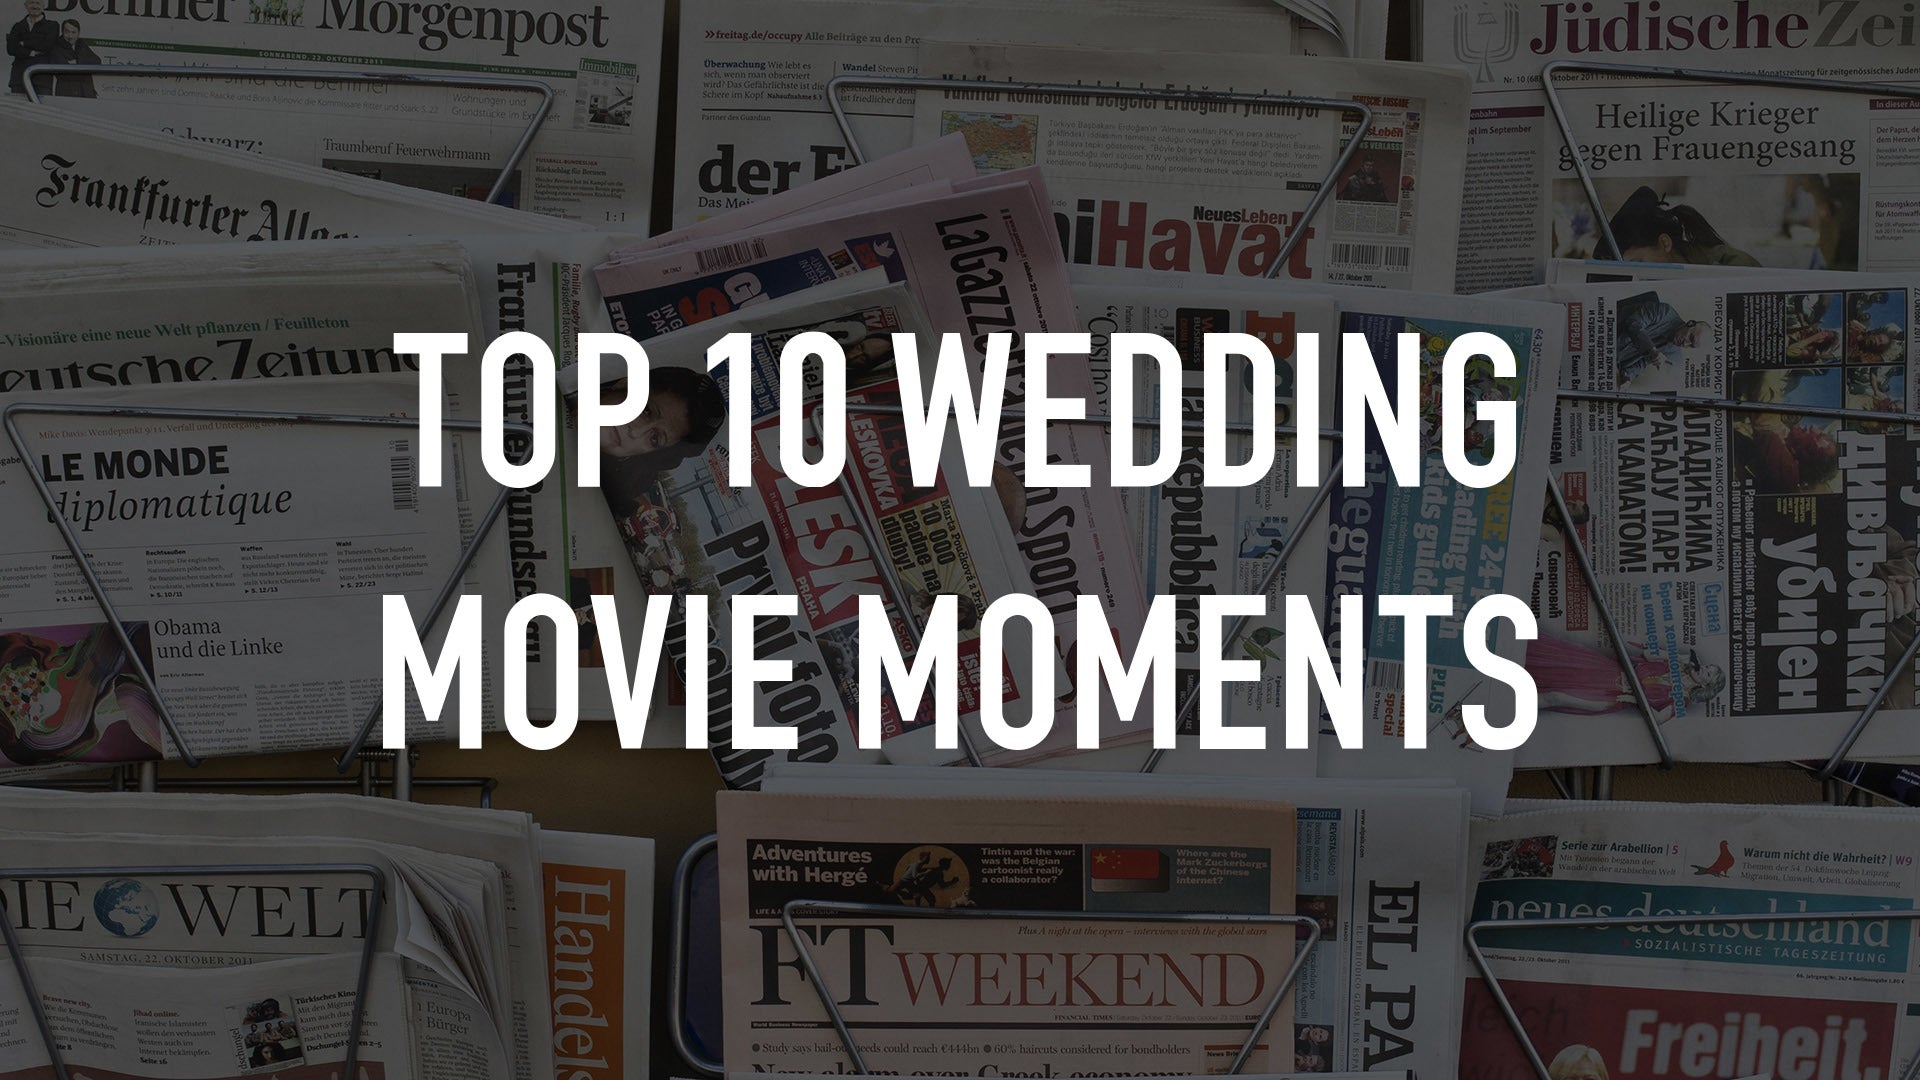 Top 10 Wedding Movie Moments